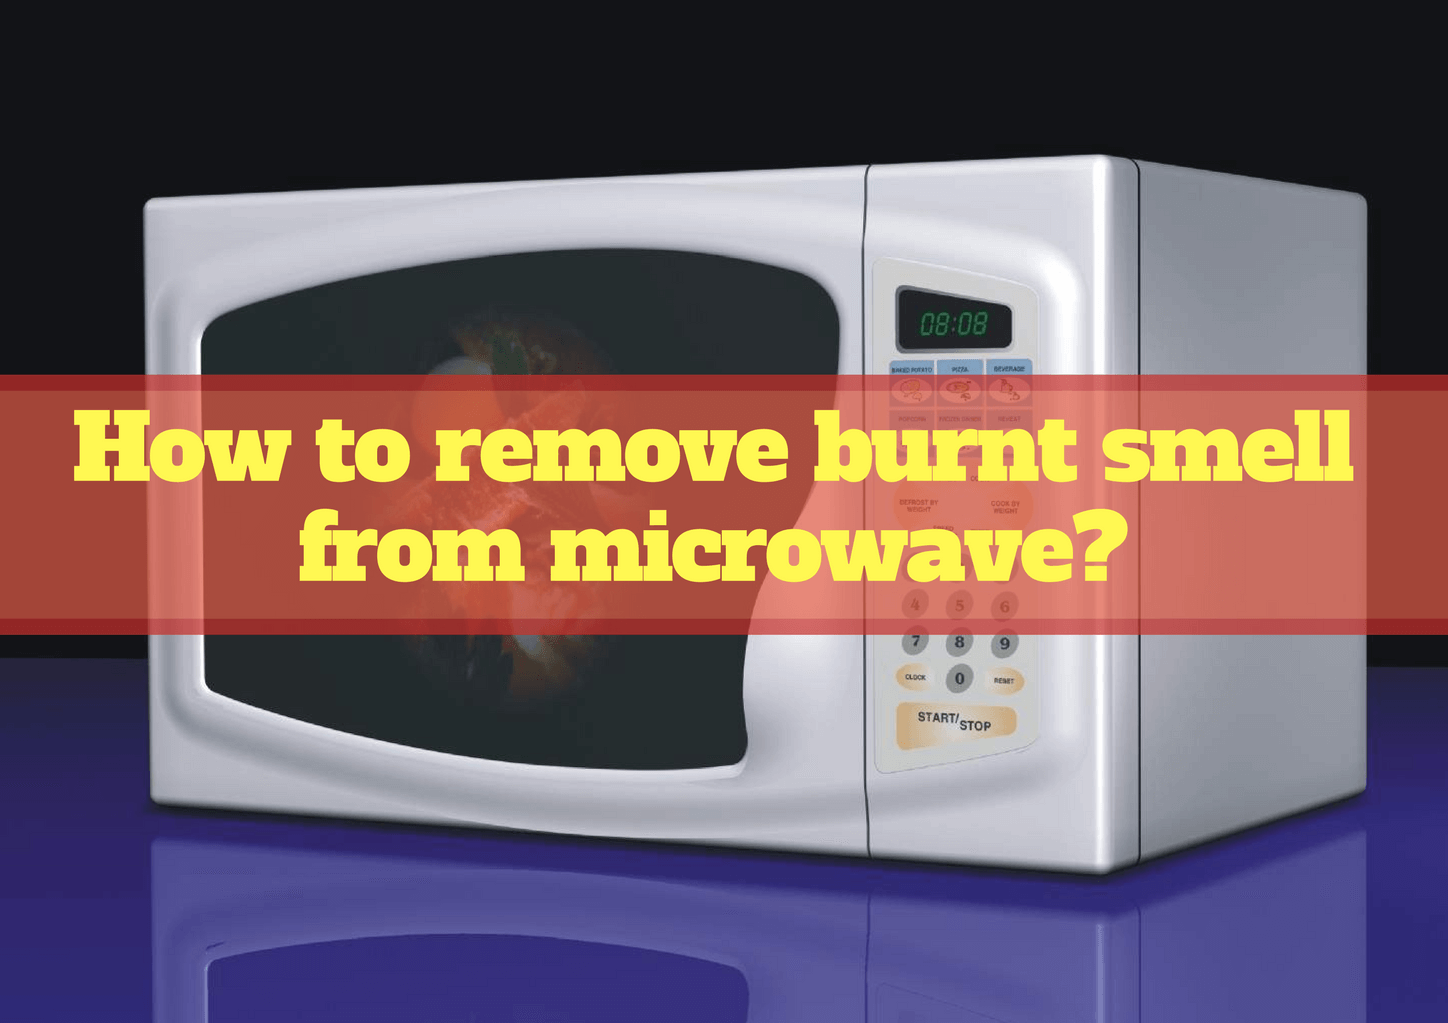 76a85a8b1387e1f4437dbcec4d63e9d4 - How To Get Burnt Oven Smell Out Of House